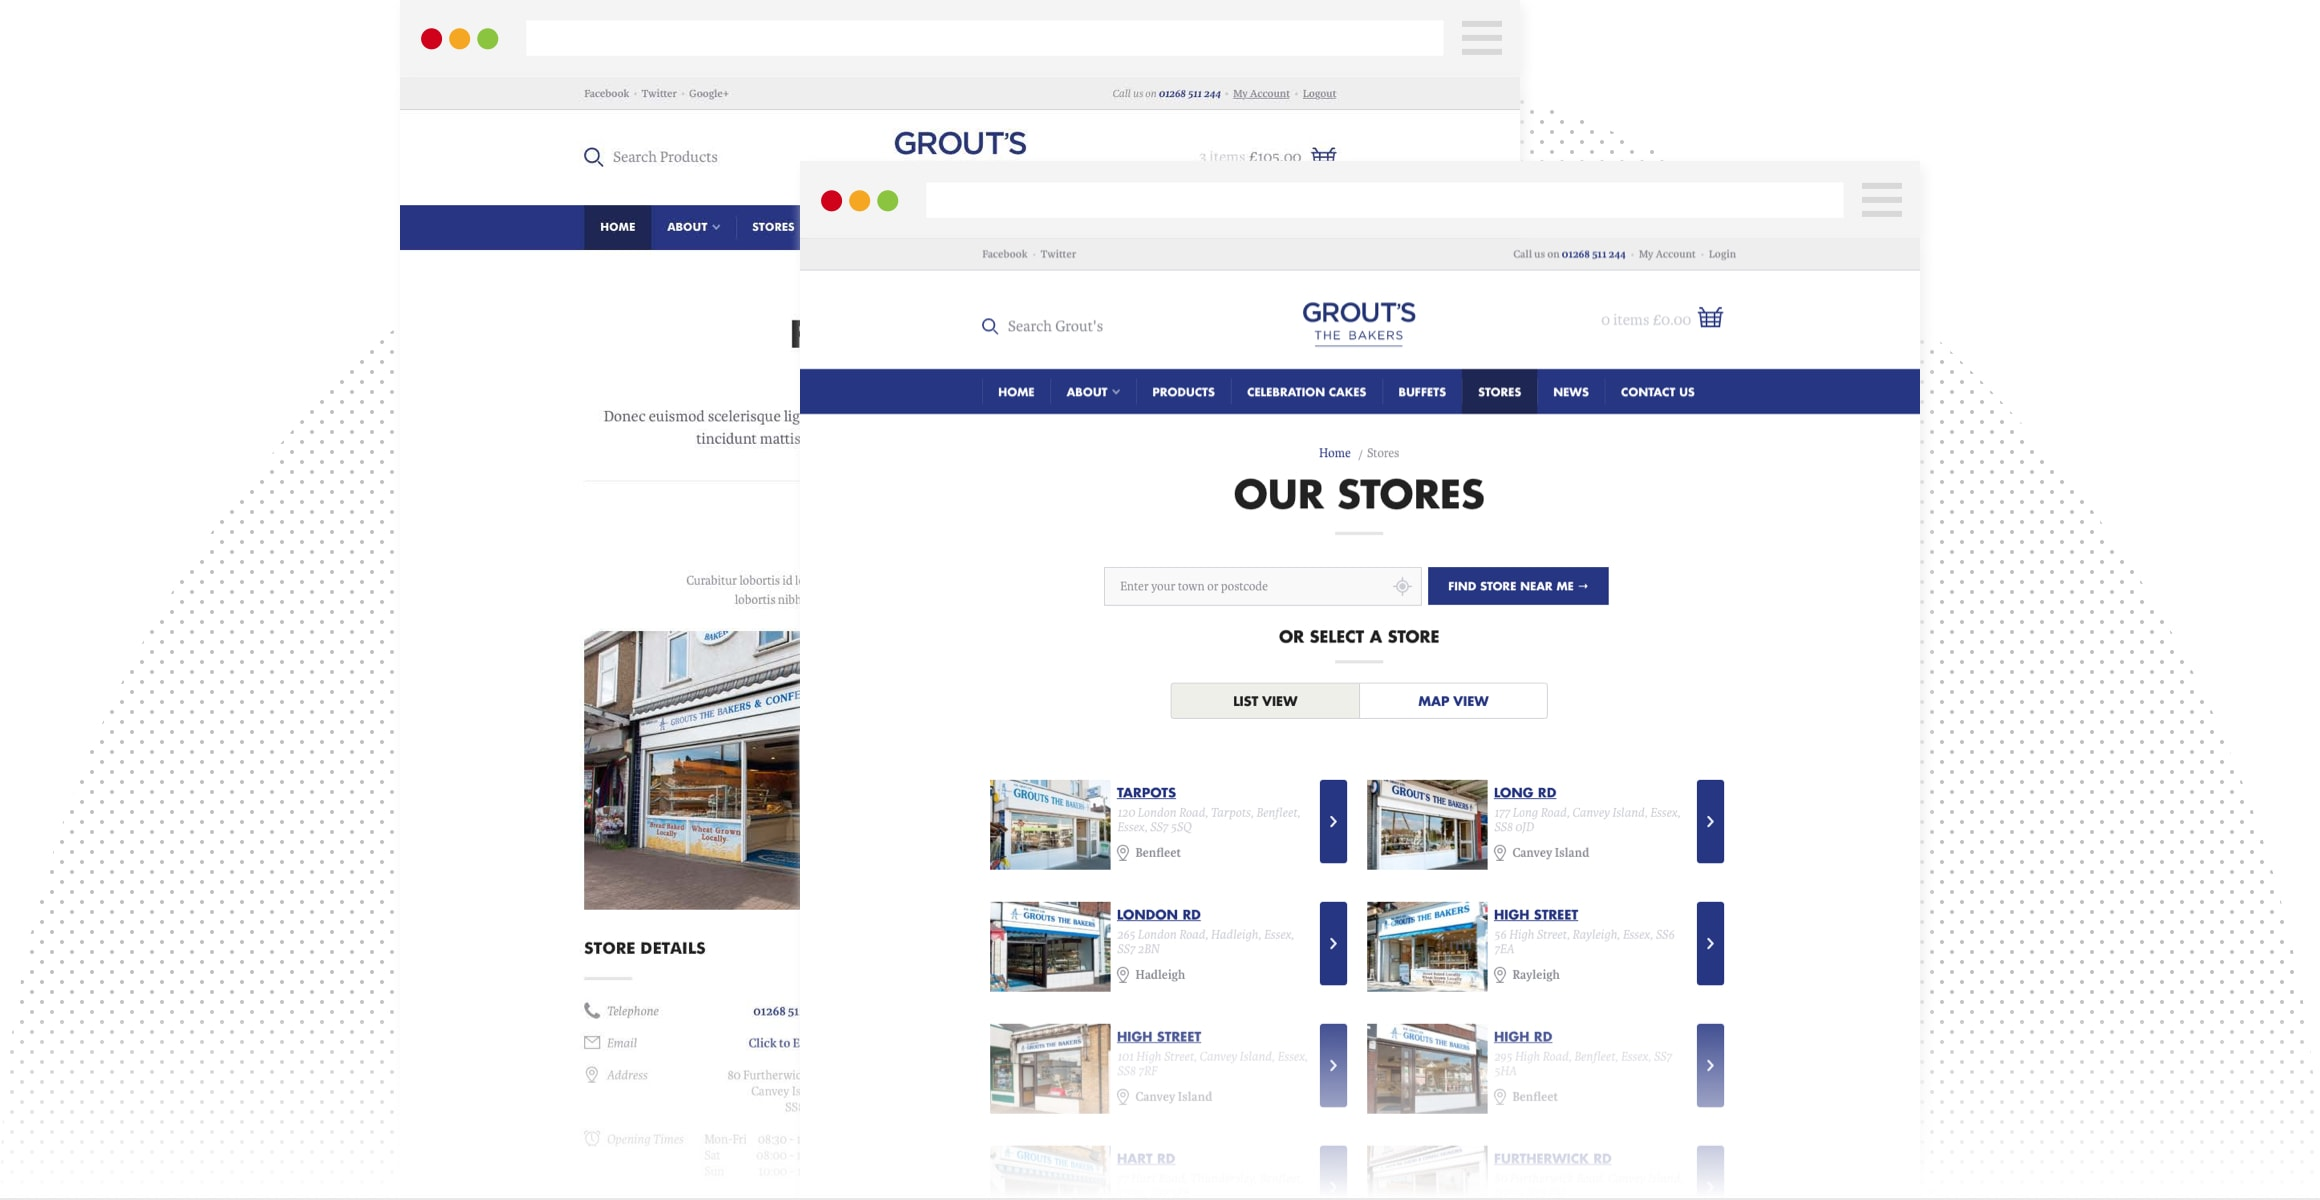 Grouts website view of their stockist locator feature